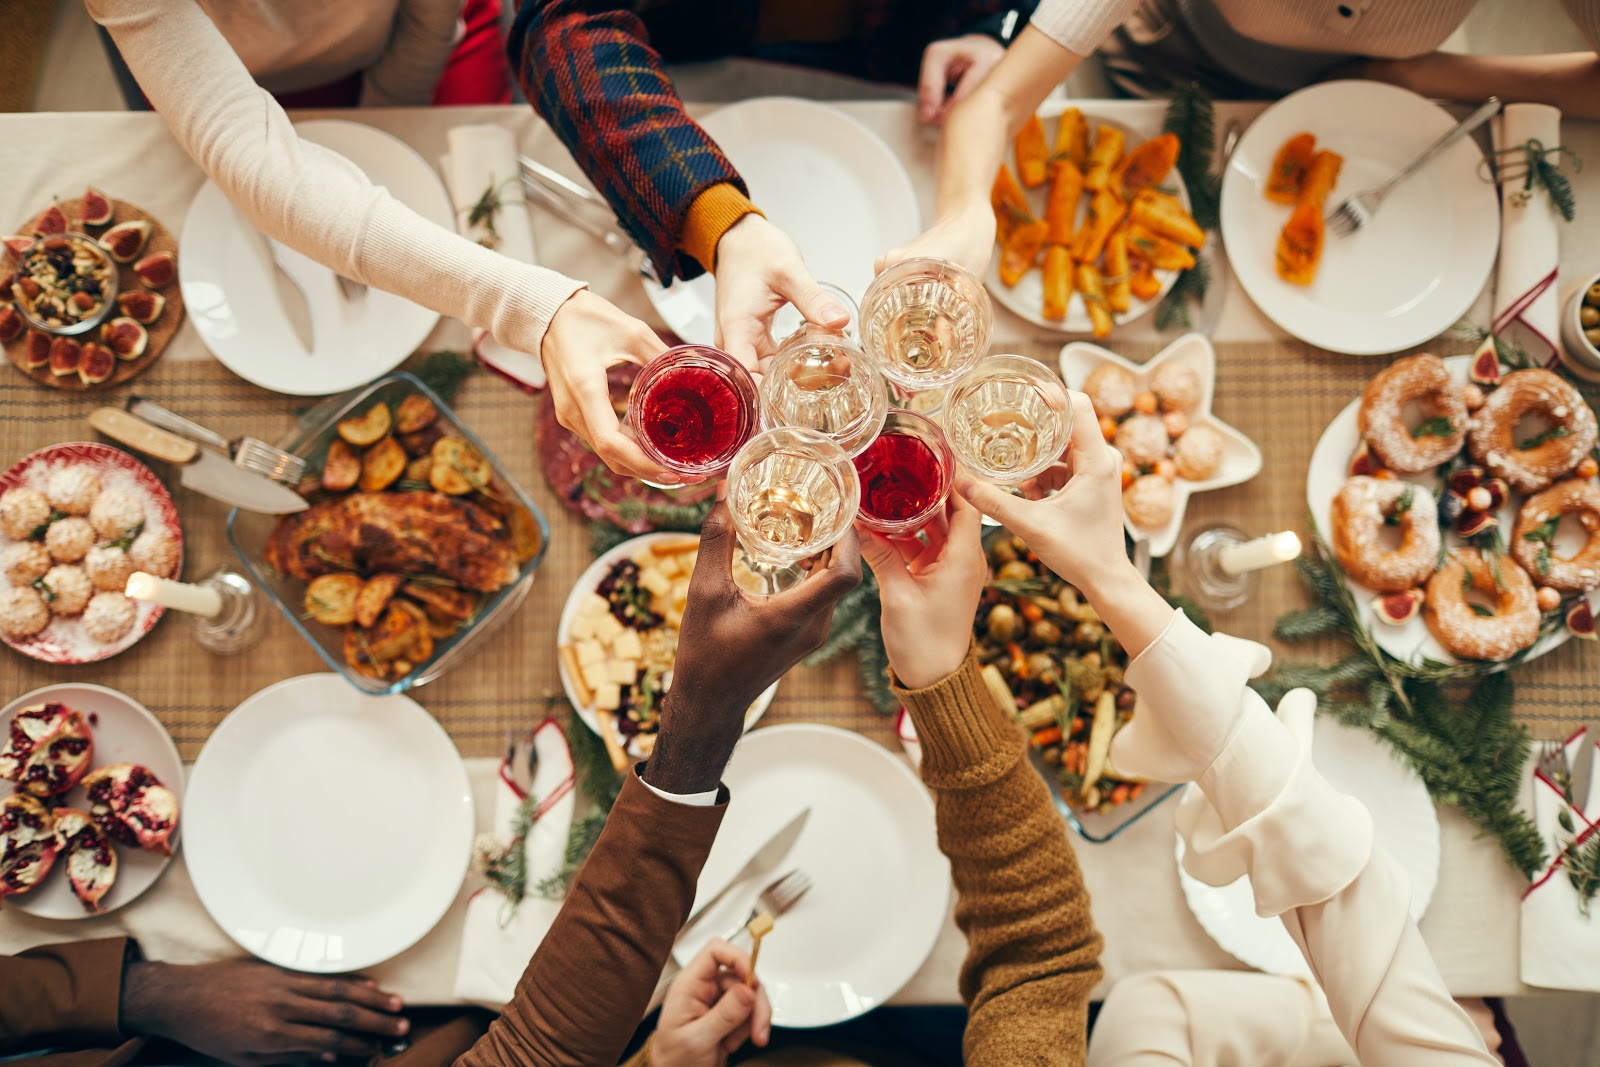 Christmas party food ideas: Guests raise their glasses over a Christmas party dinner table